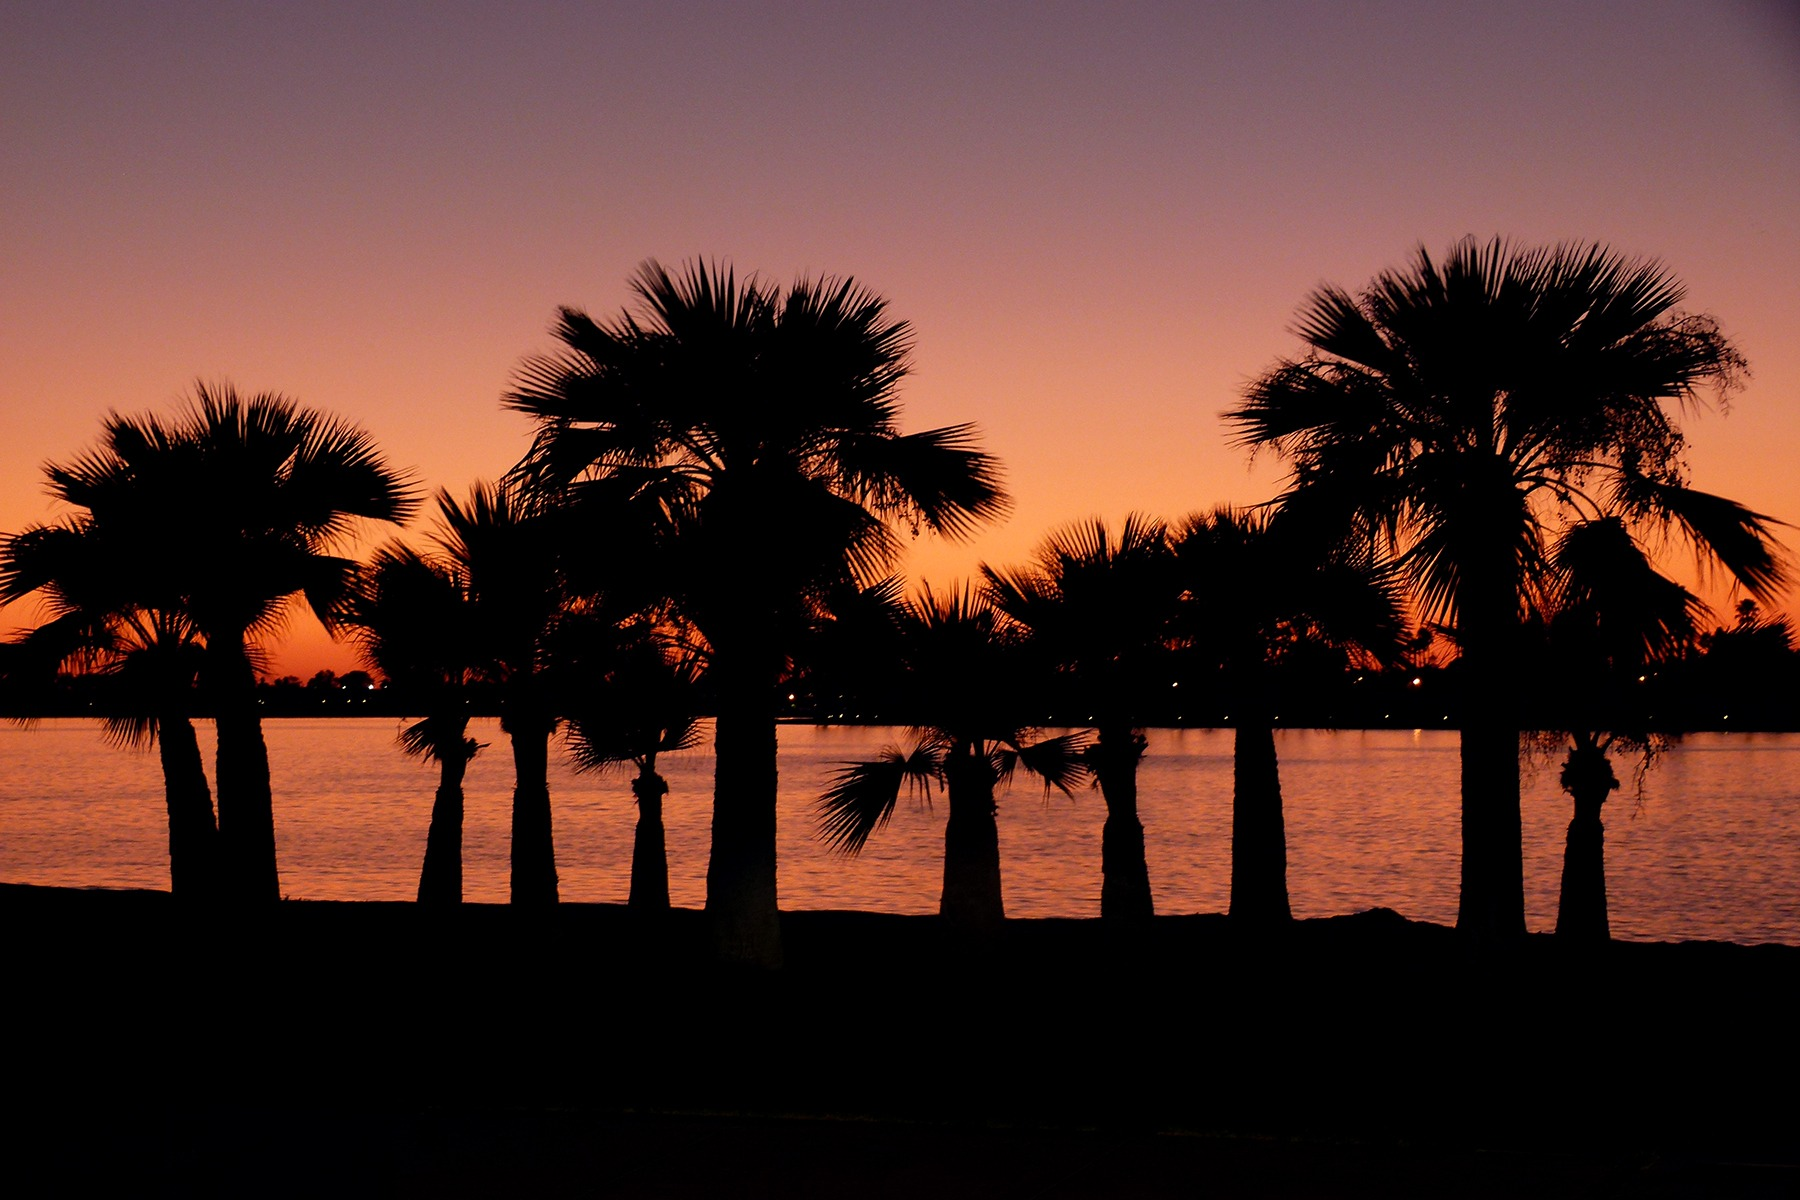 128685 download wallpaper Dark, San Diego, California, Night, Palms screensavers and pictures for free